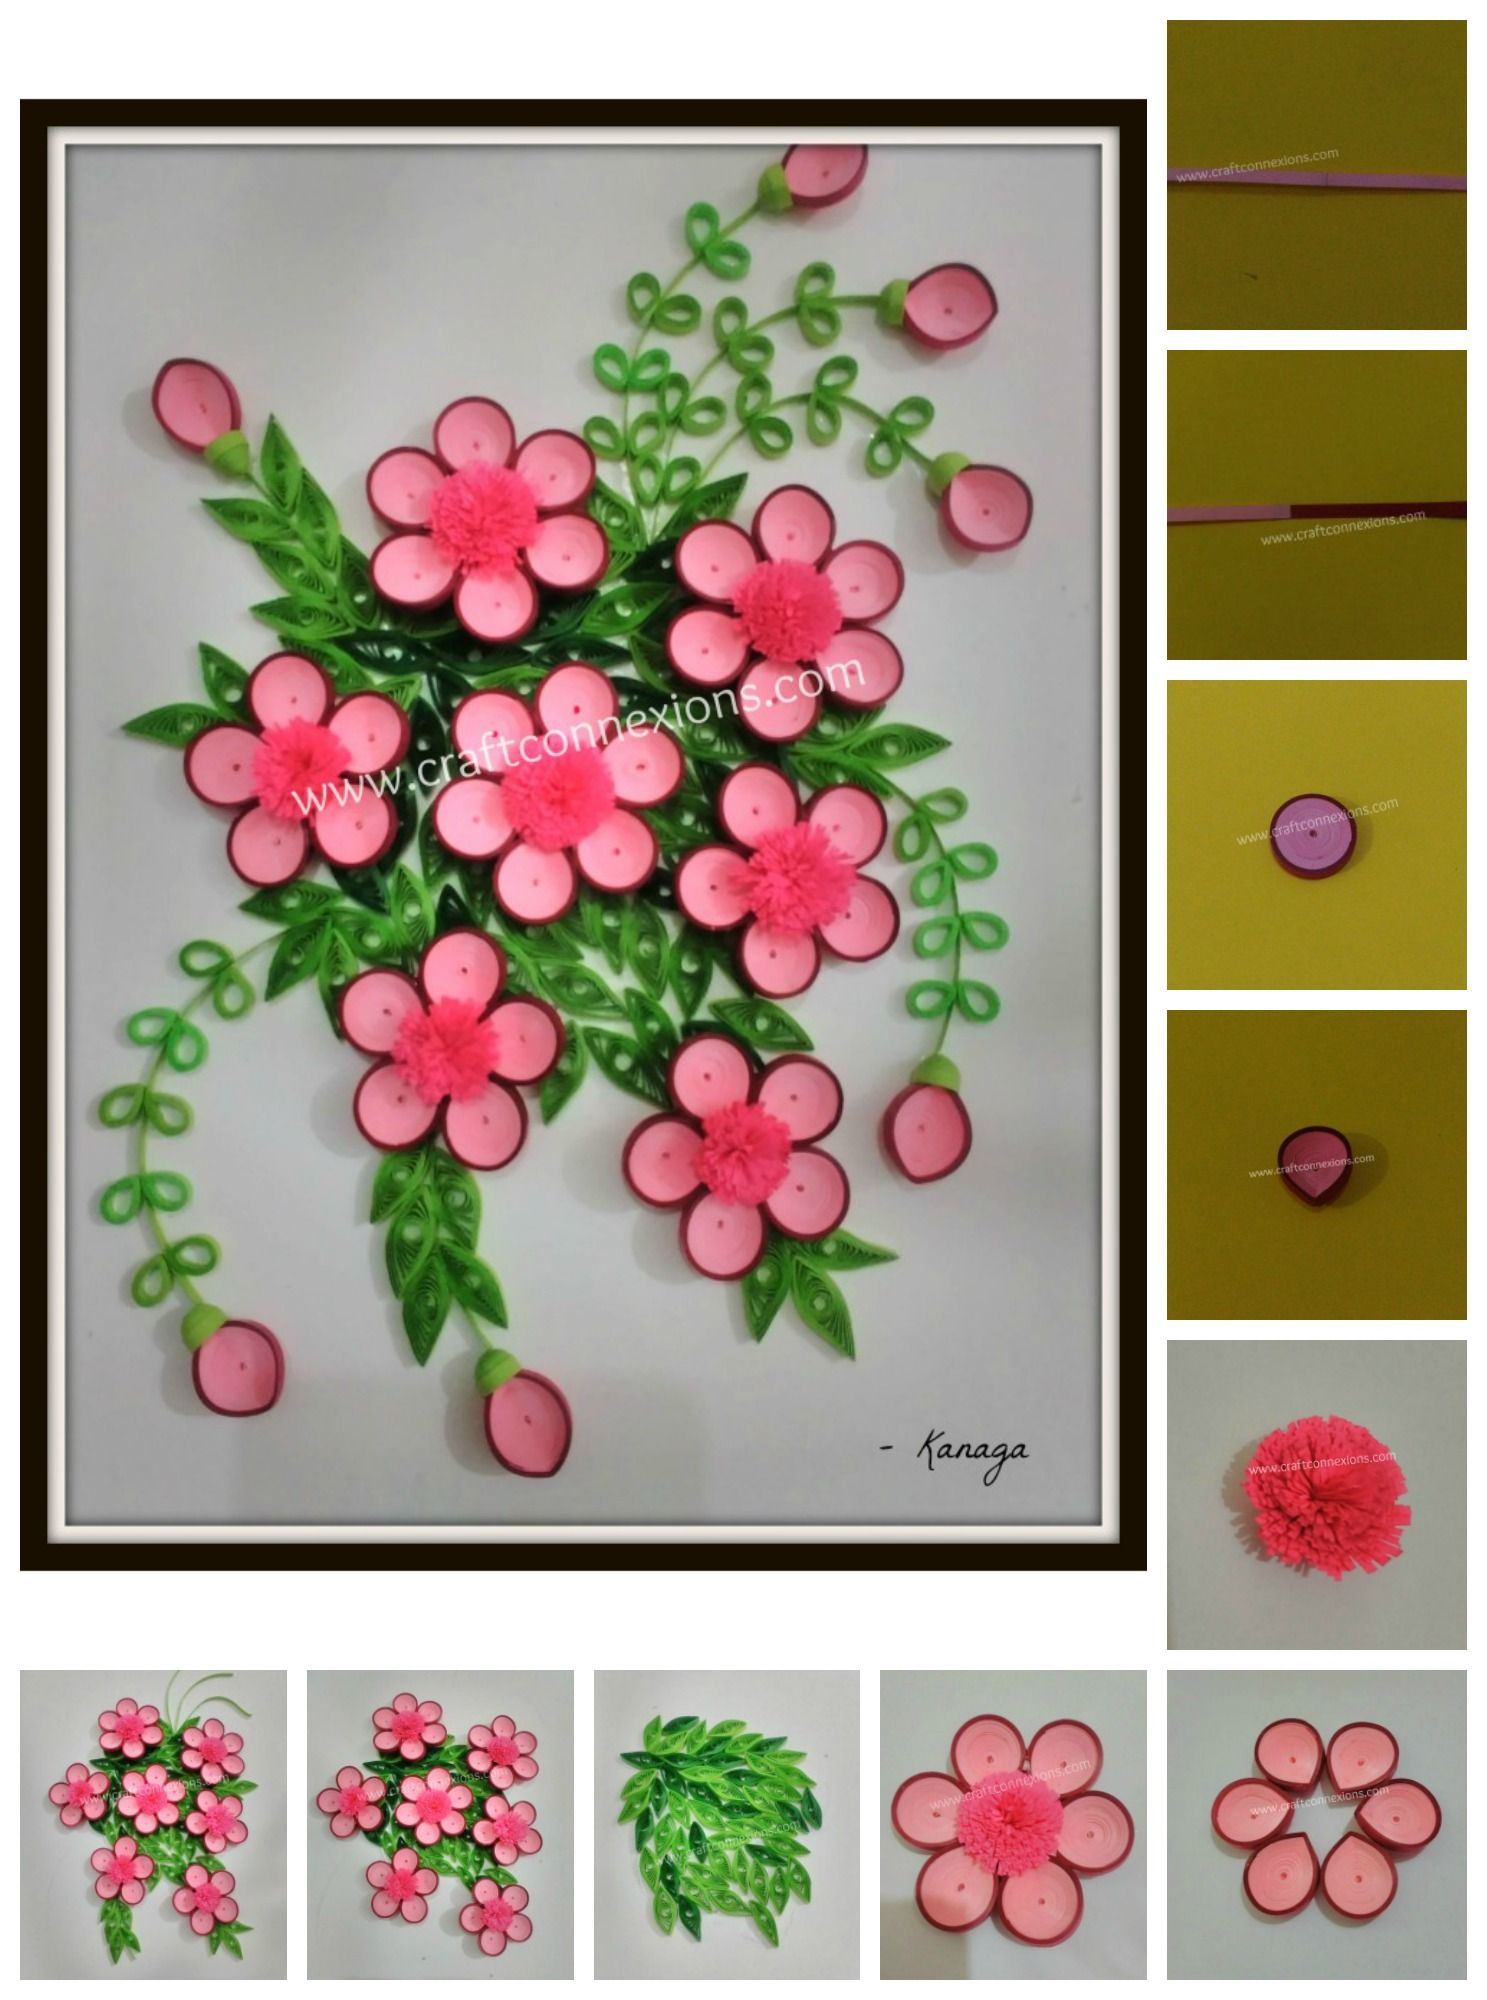 Paper Quilling Floral Wall Frame Step By Step Instructions